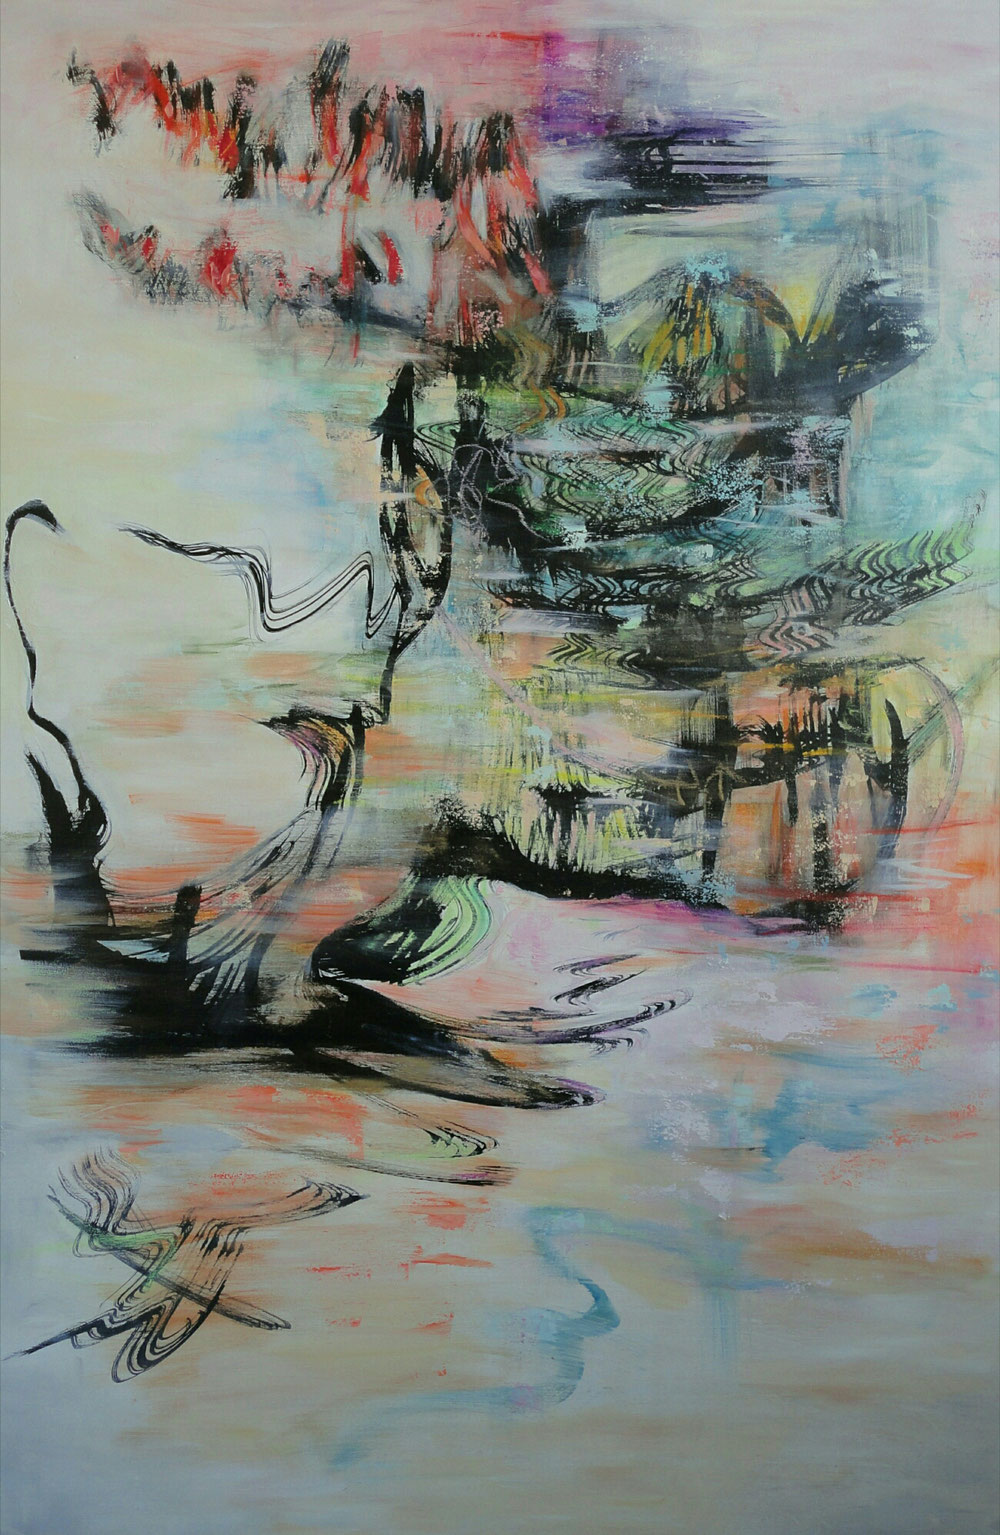 Kingdom of the Dragonfly, 120 x 80, mixed media on canvas / available, inquiries to artleenakr(at)gmail.com